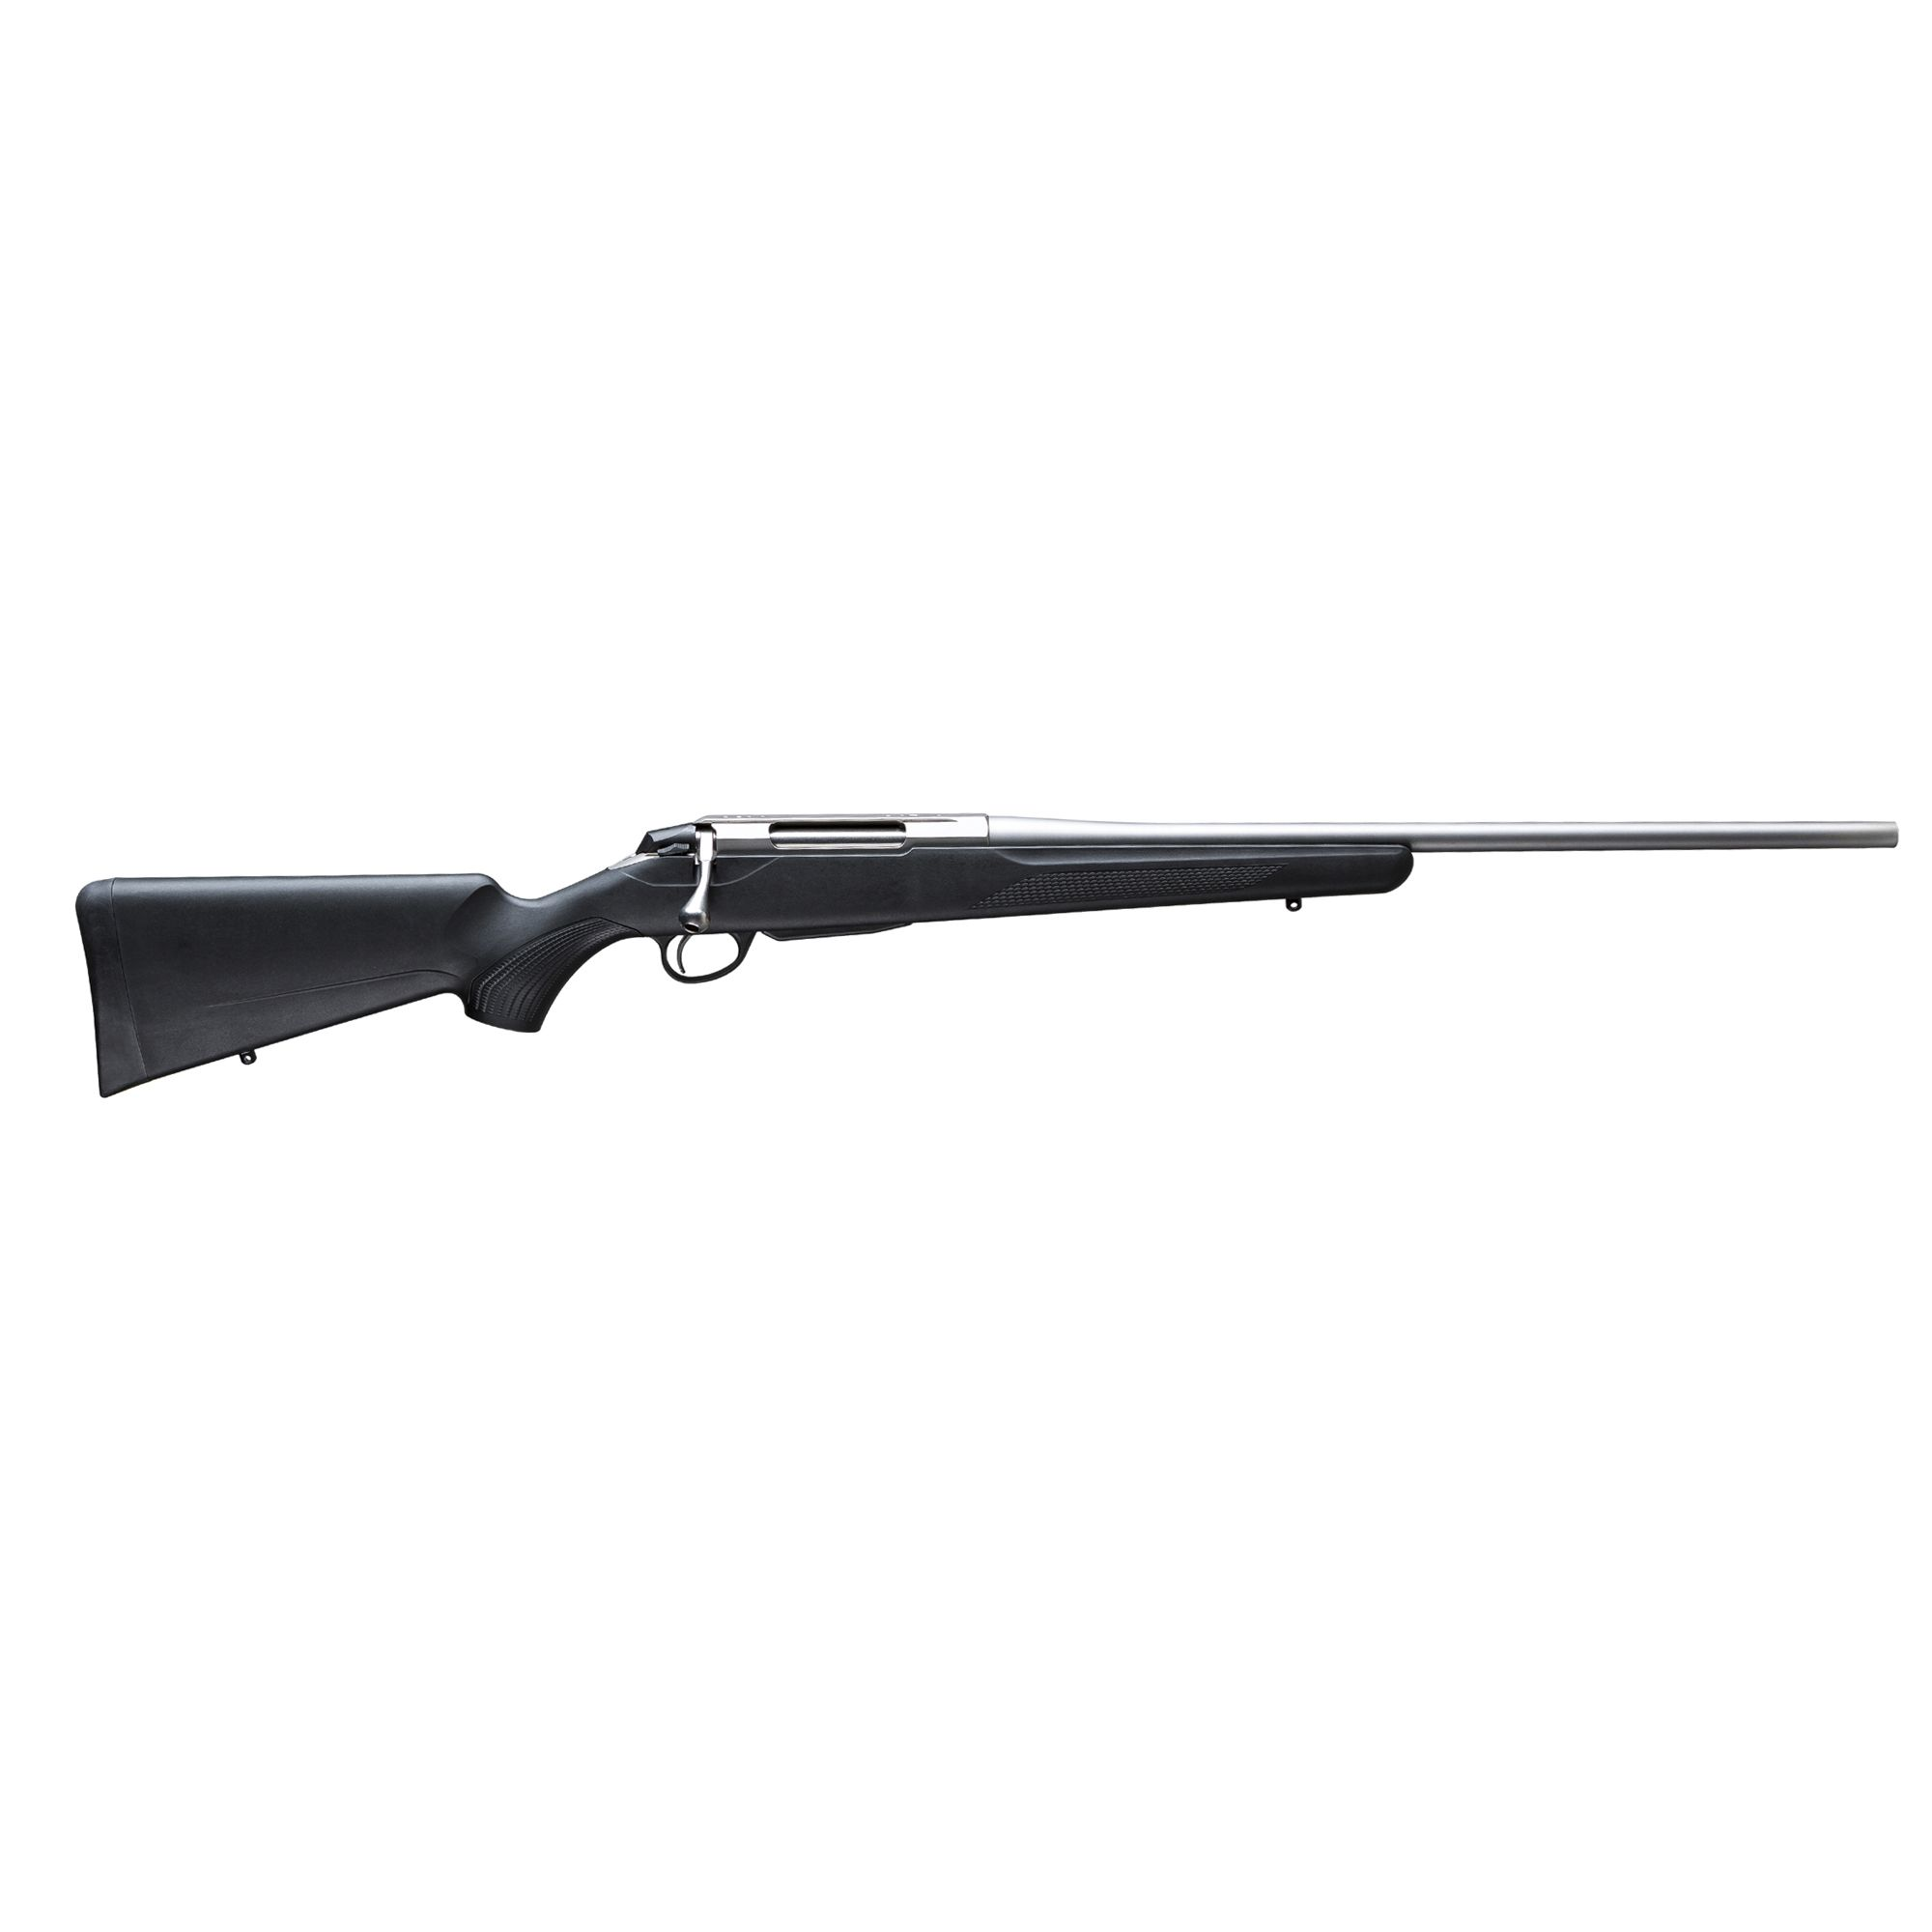 T3x Lite Stainless, rifle